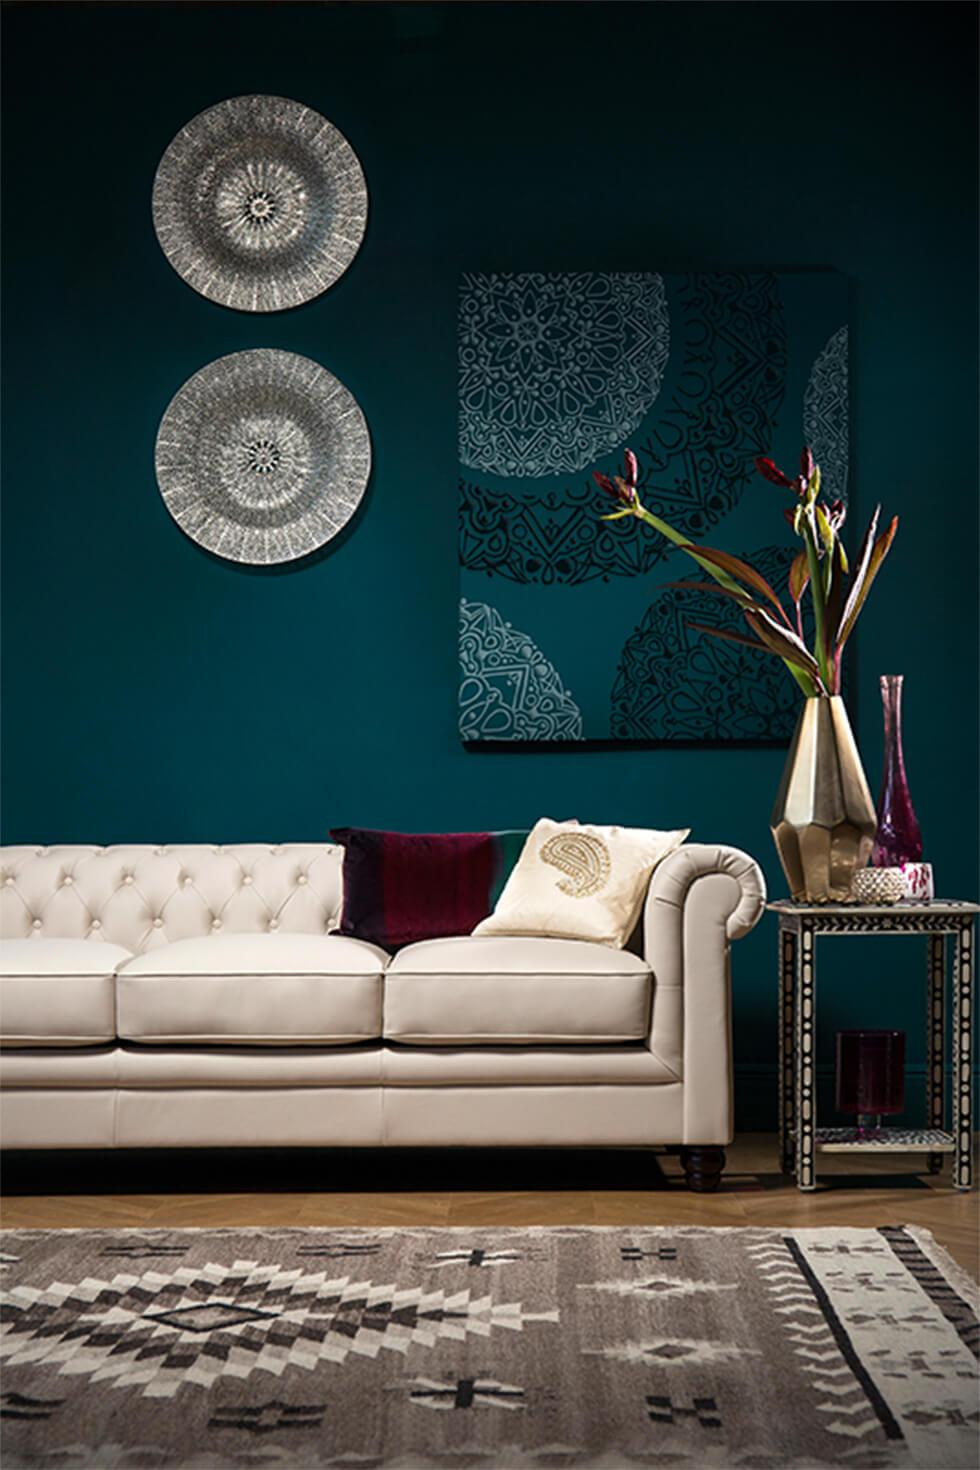 Dark teal living room with global decor and classic white leather Chesterfield sofa